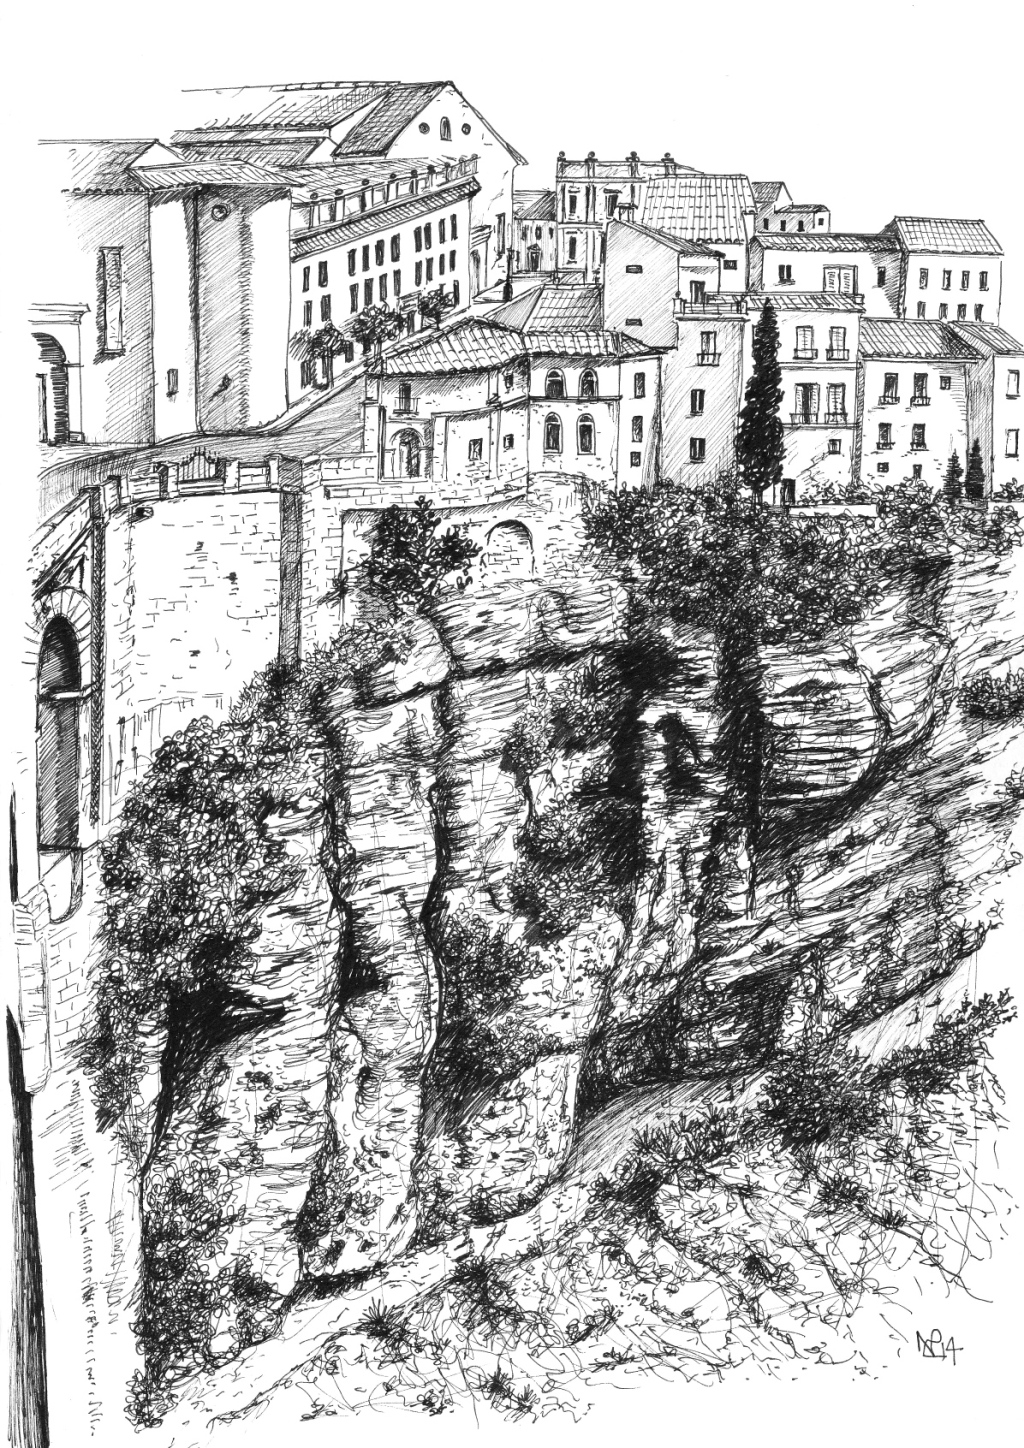 Ronda 2: The Tajo Gorge (2014 © Nicholas de Lacy-Brown, pen on paper)